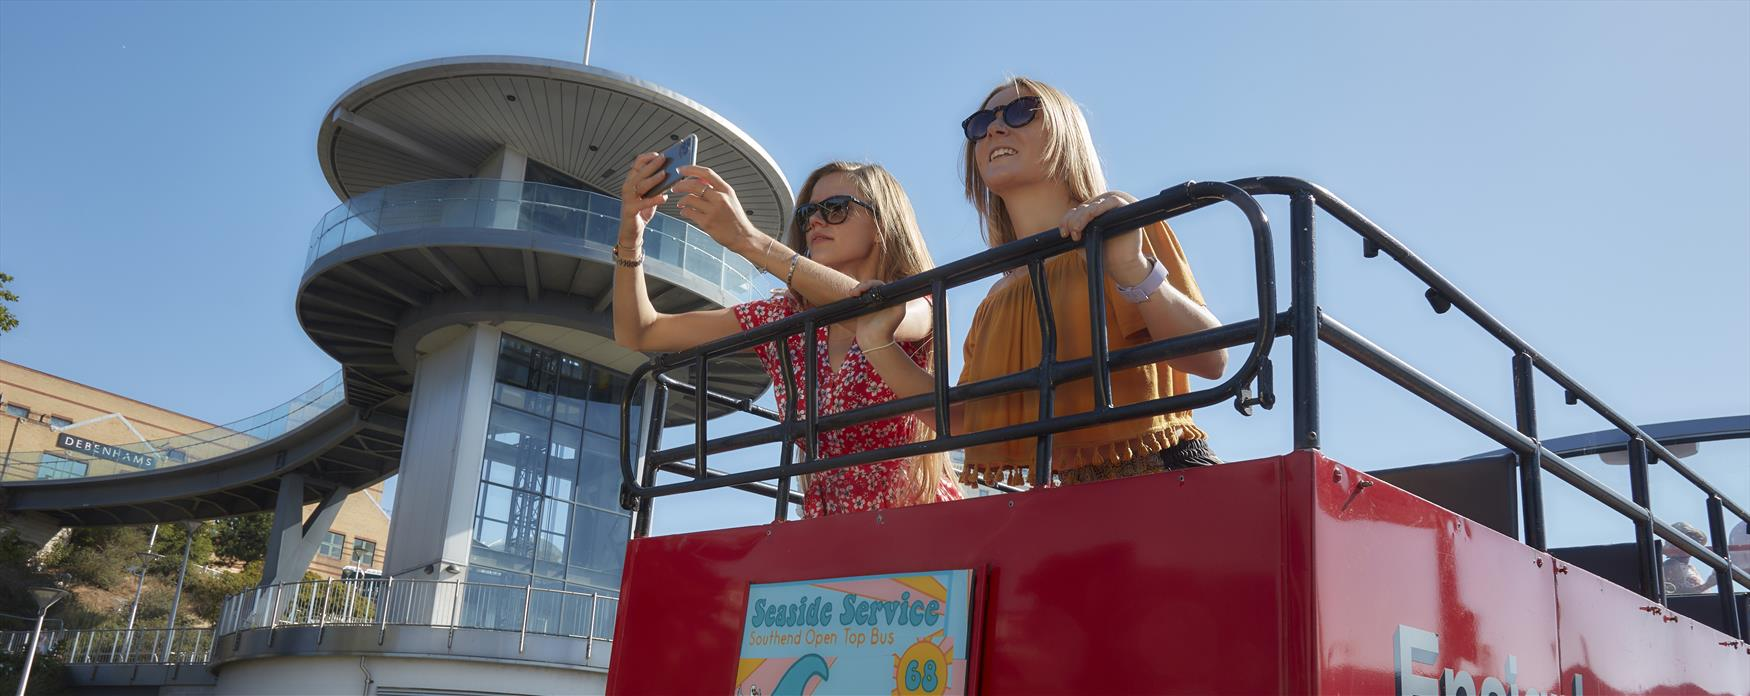 Two people on red  open top bus taking photo